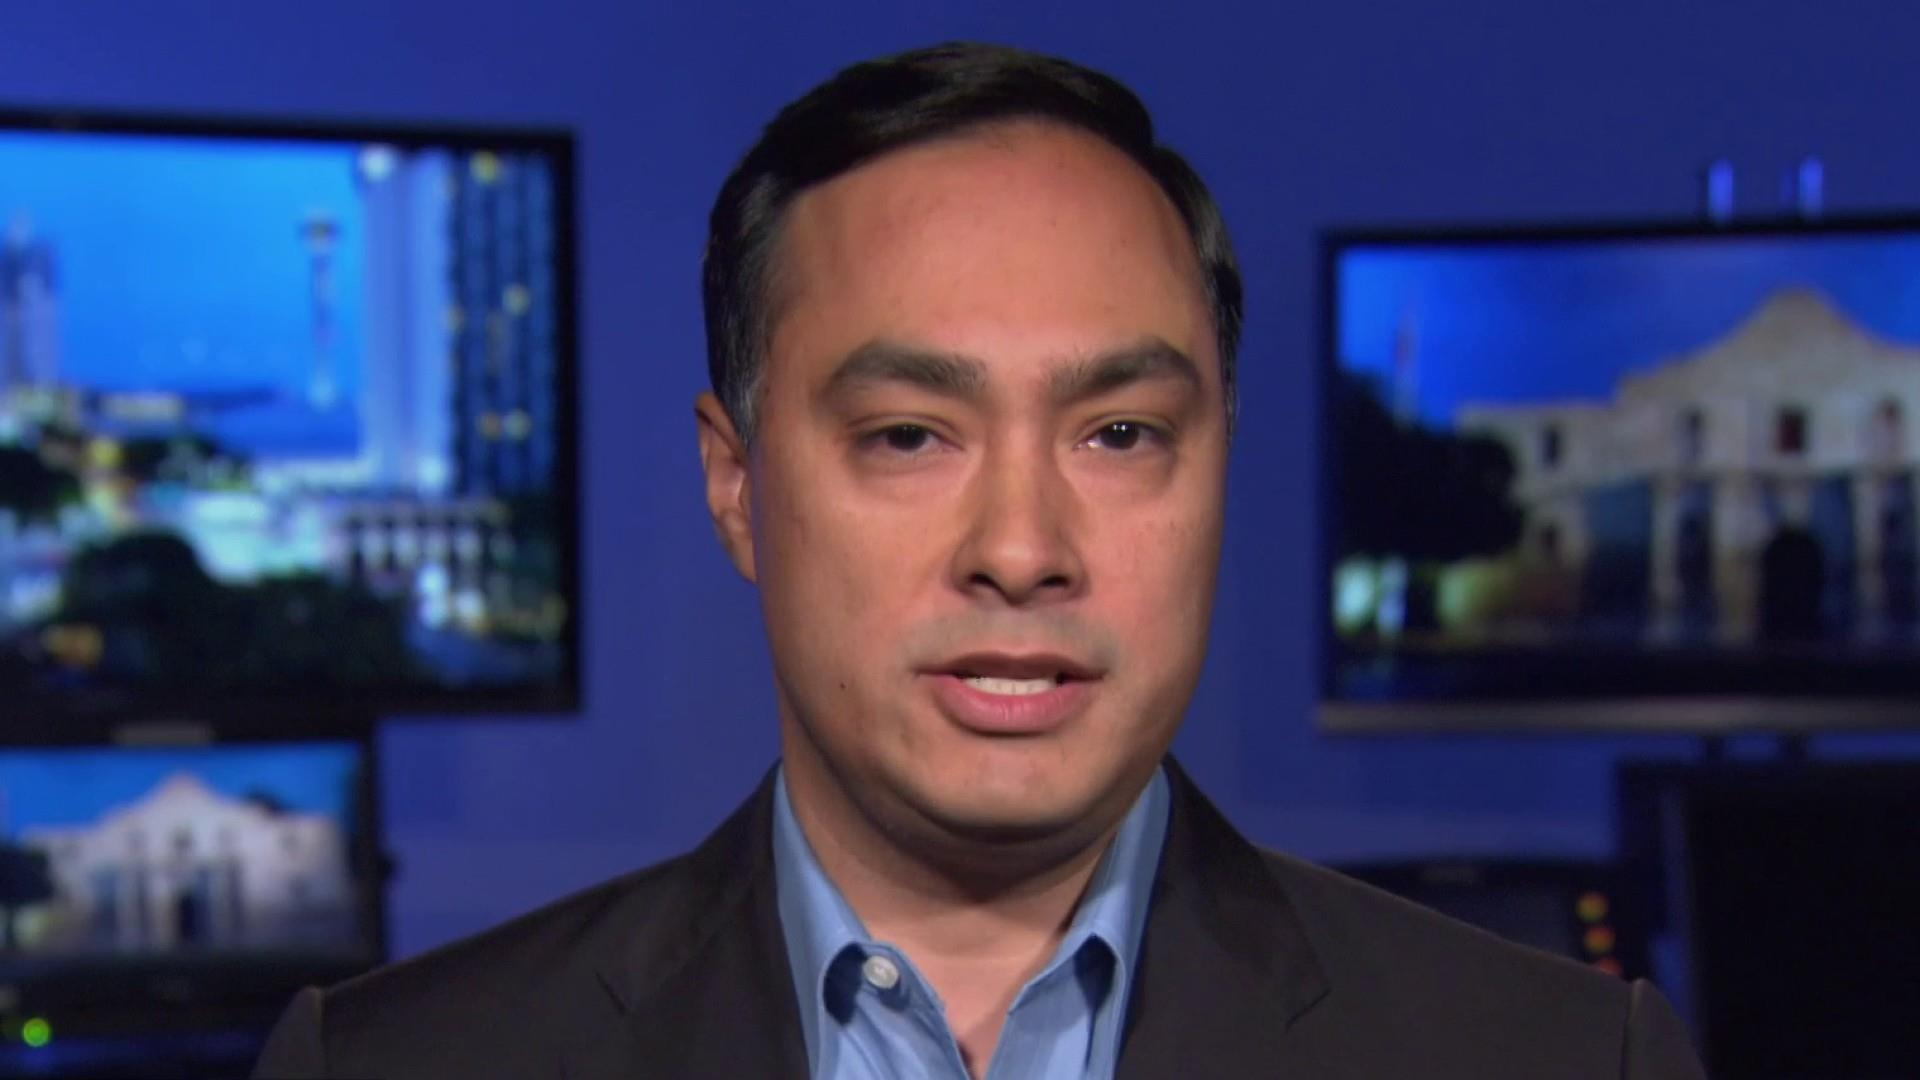 Rep. Castro: 'Human rights are being neglected.'